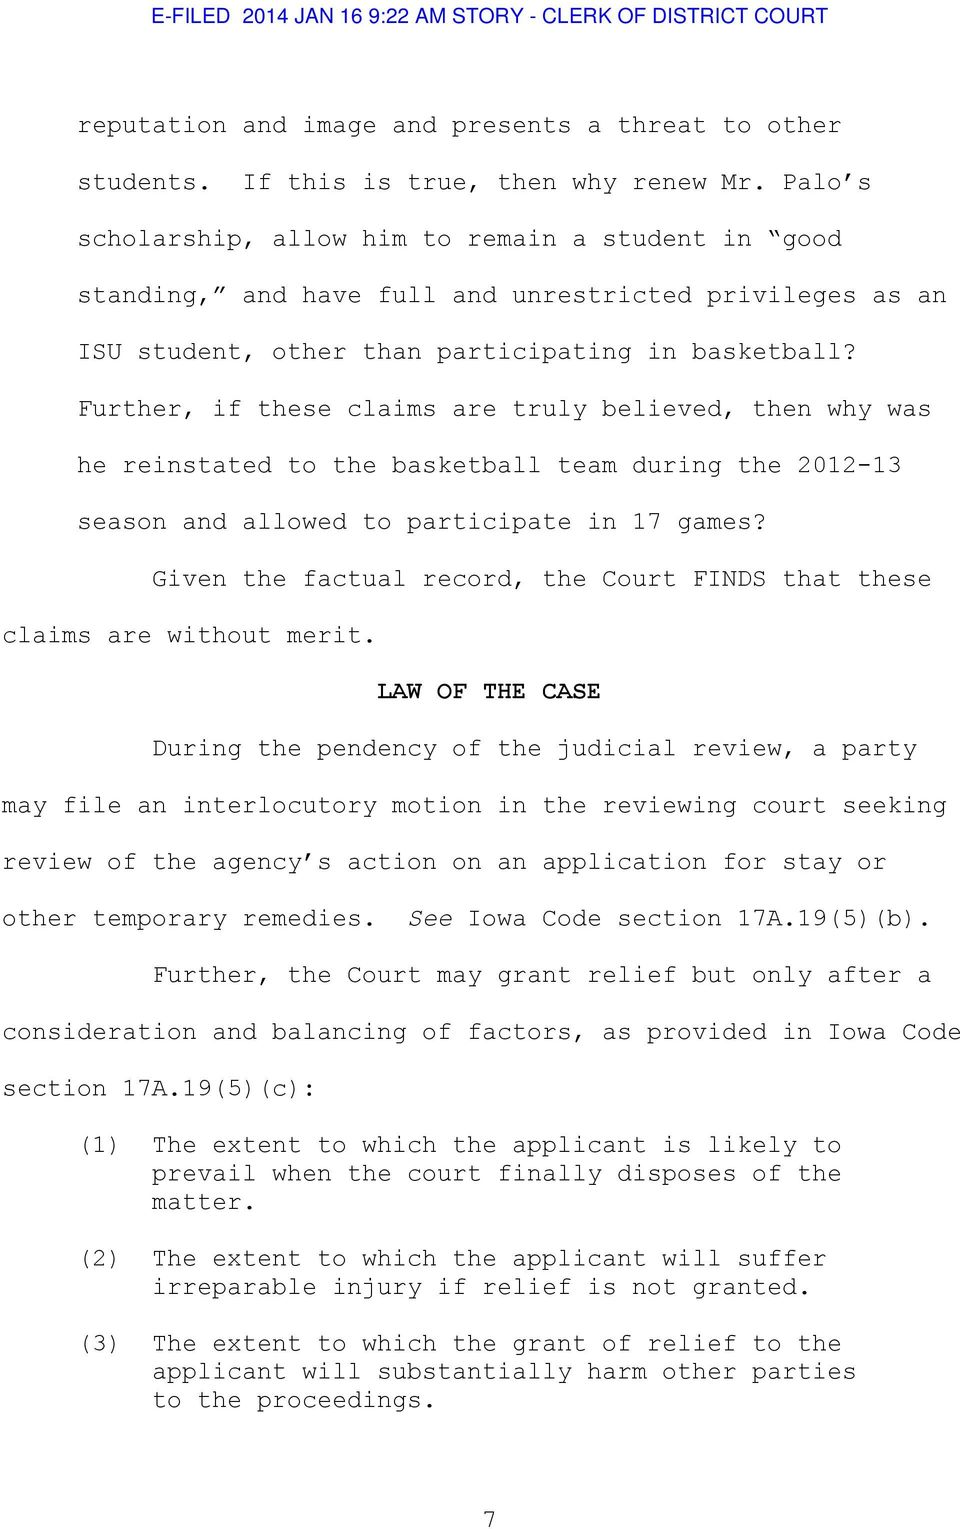 Further, if these claims are truly believed, then why was he reinstated to the basketball team during the 2012-13 season and allowed to participate in 17 games?